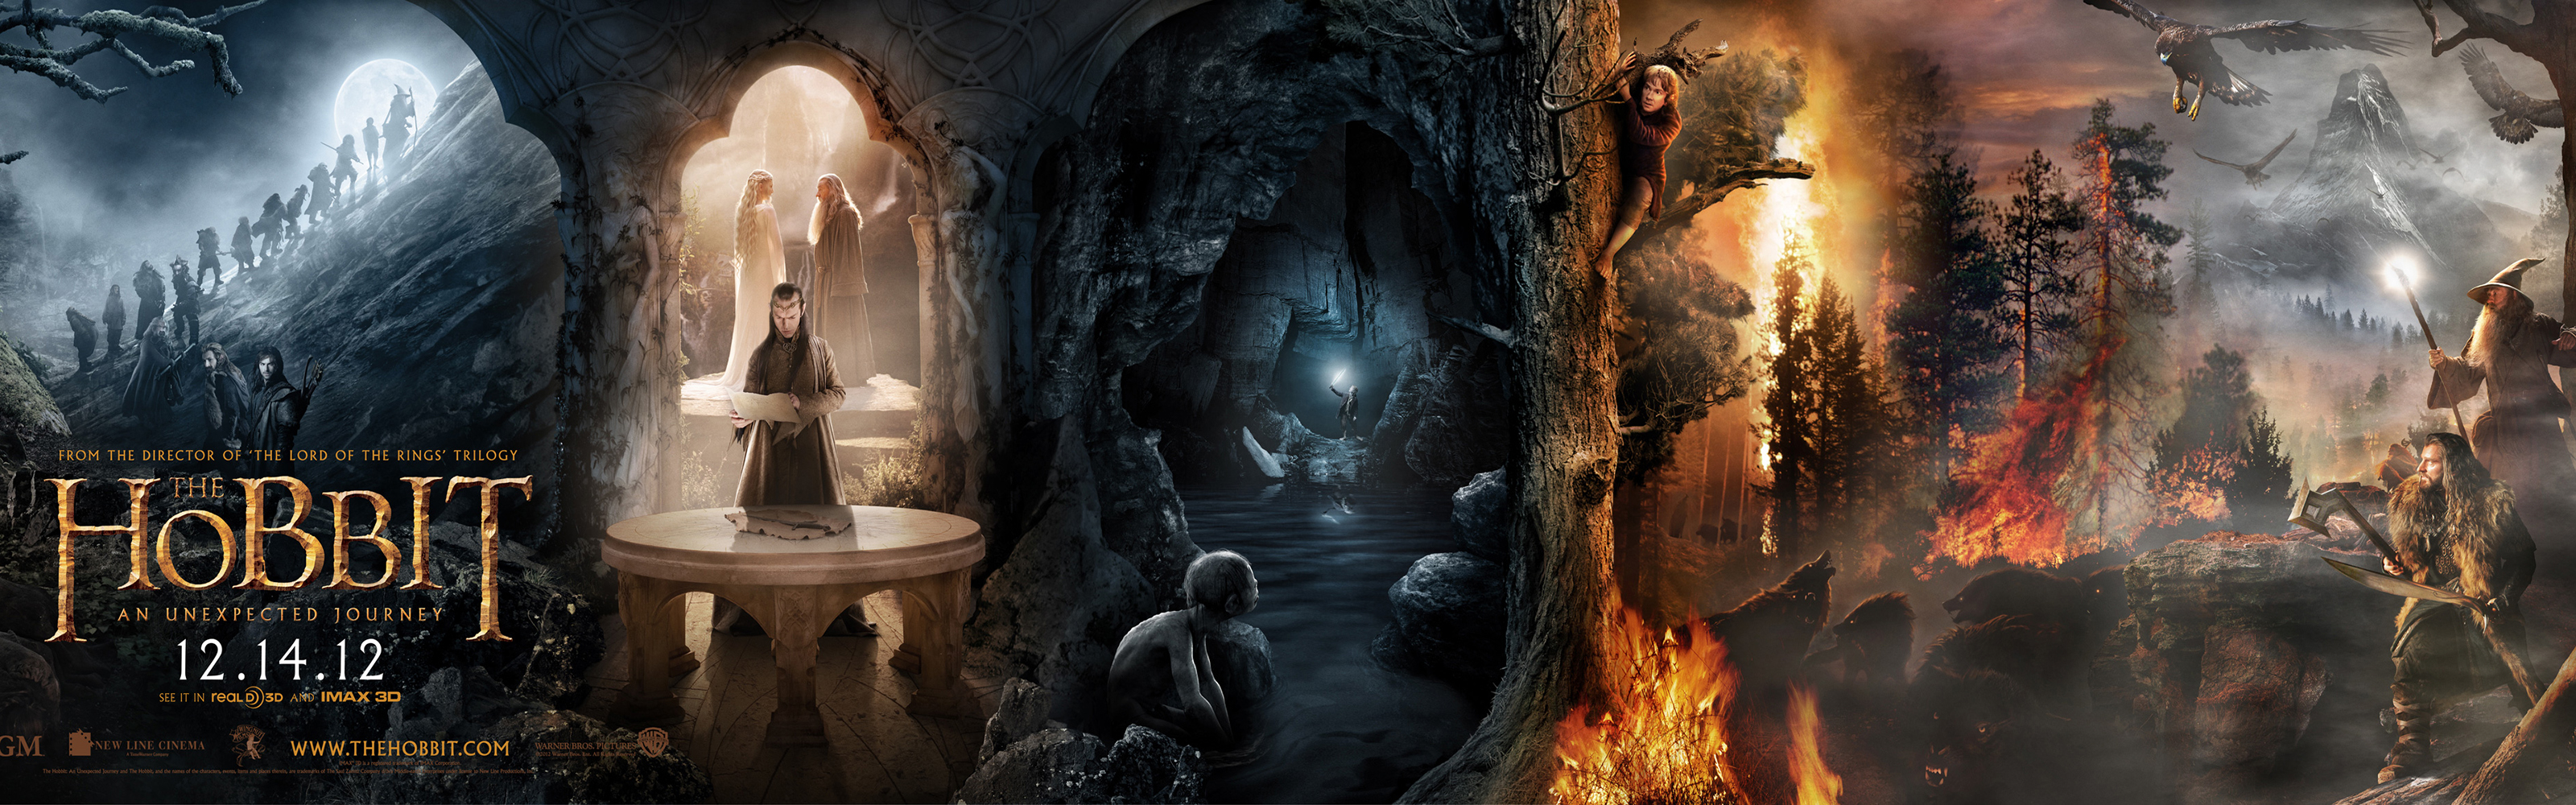 The Hobbit themes for Windows 8 HD Wallpapers 3200x1000